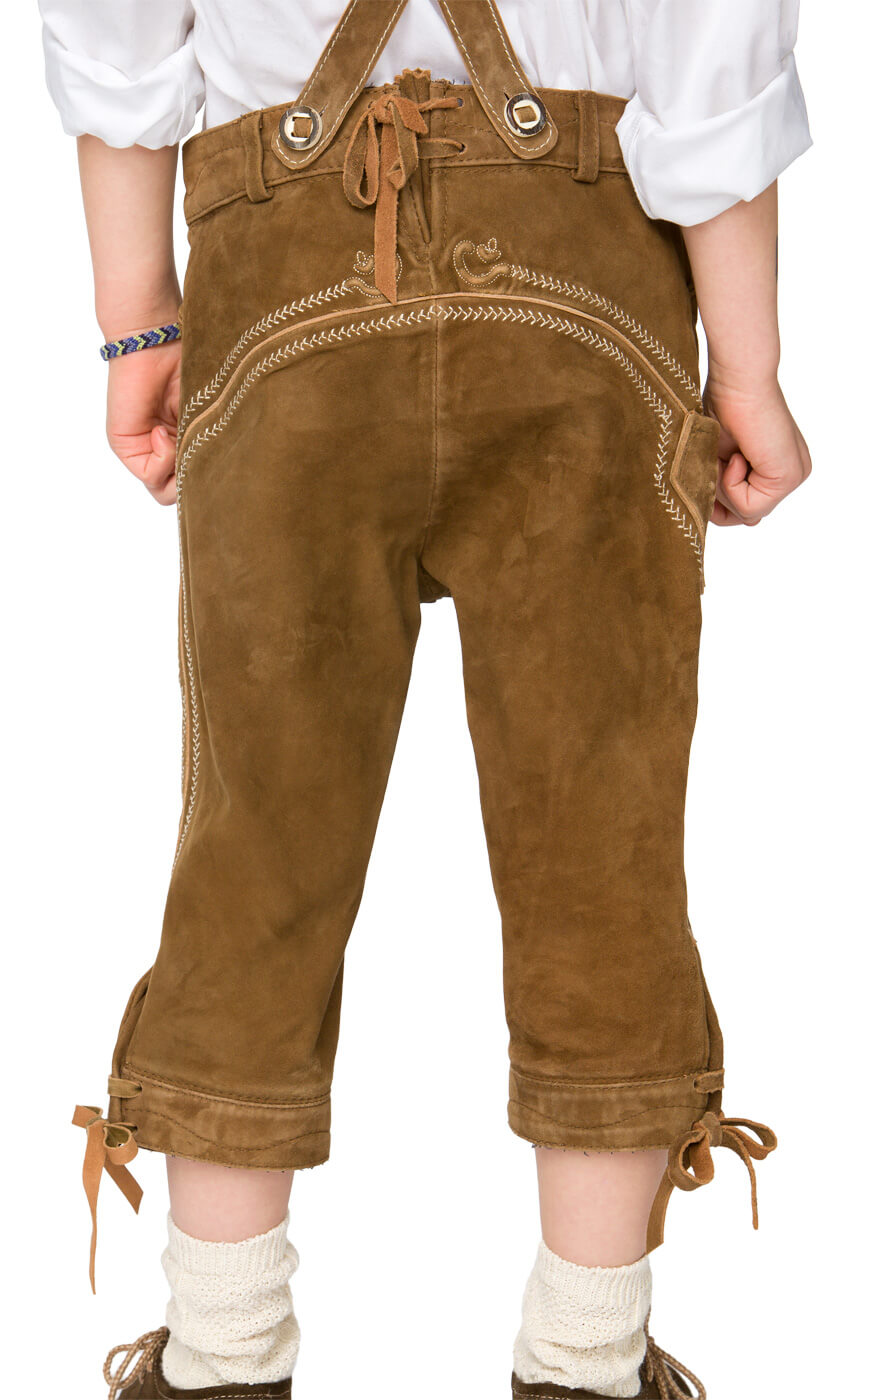 weitere Bilder von Chlidren leather trousers knee length P-300 lightbrown